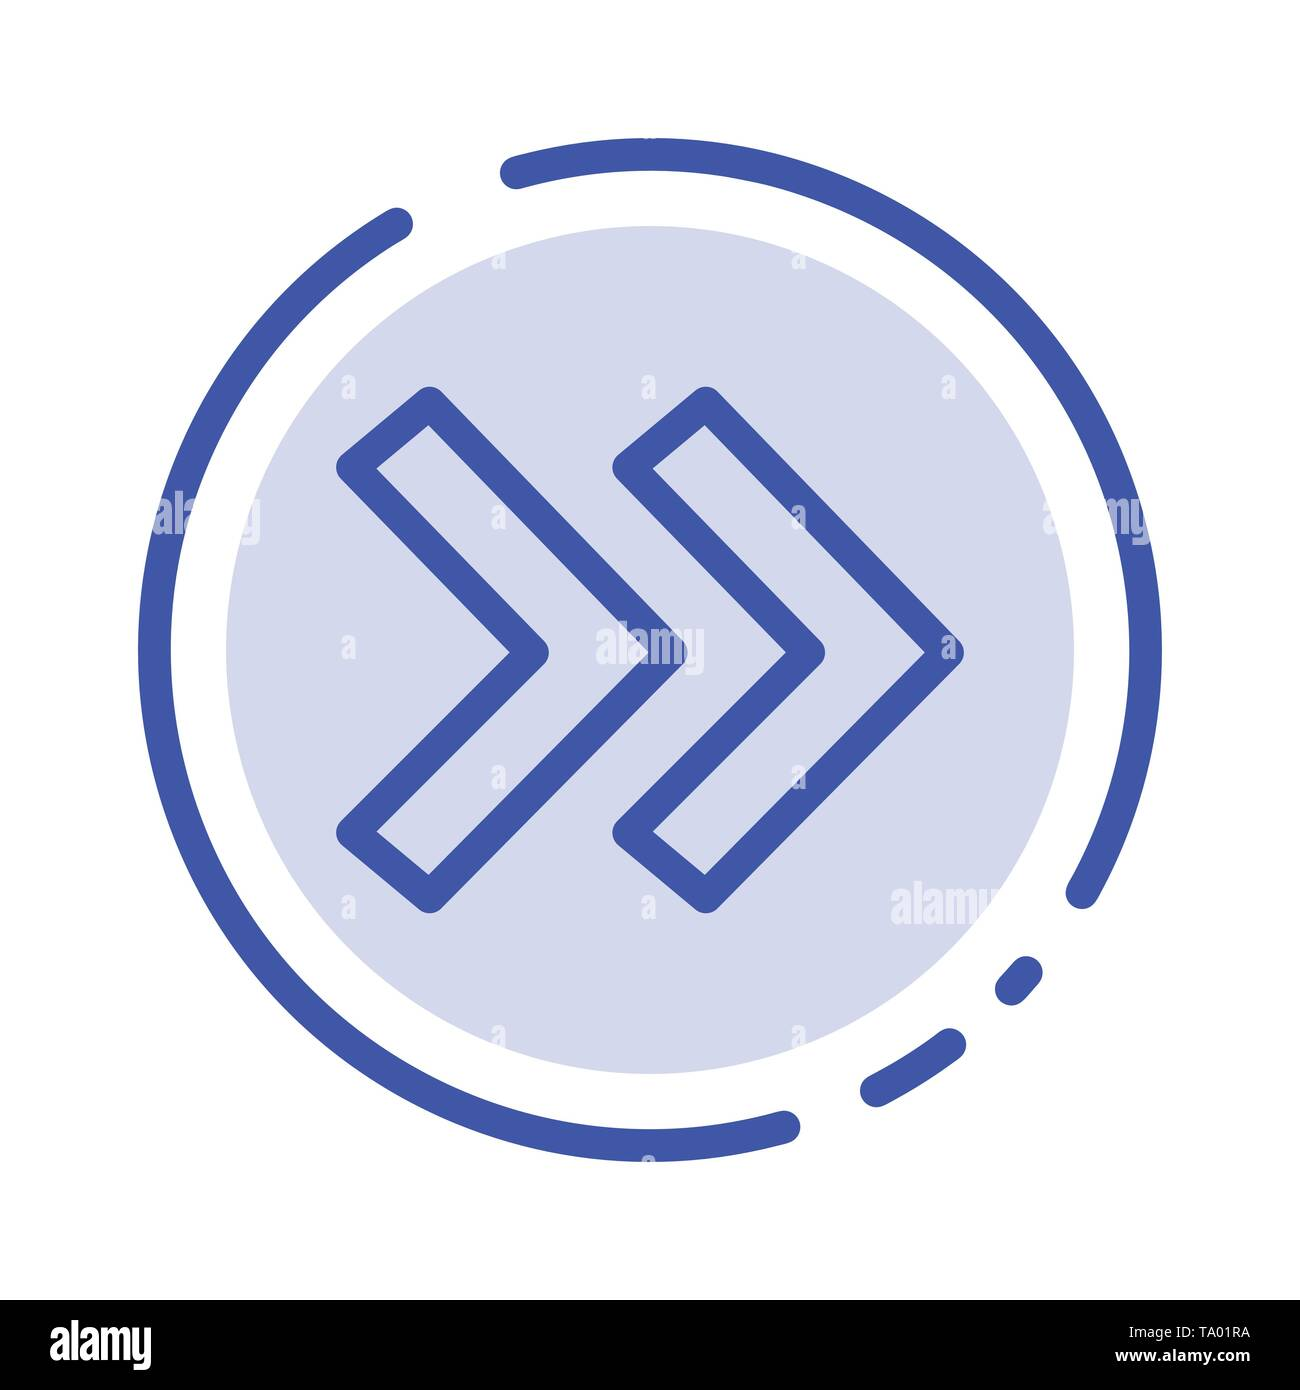 Arrow, Arrows, Right Blue Dotted Line Line Icon - Stock Image